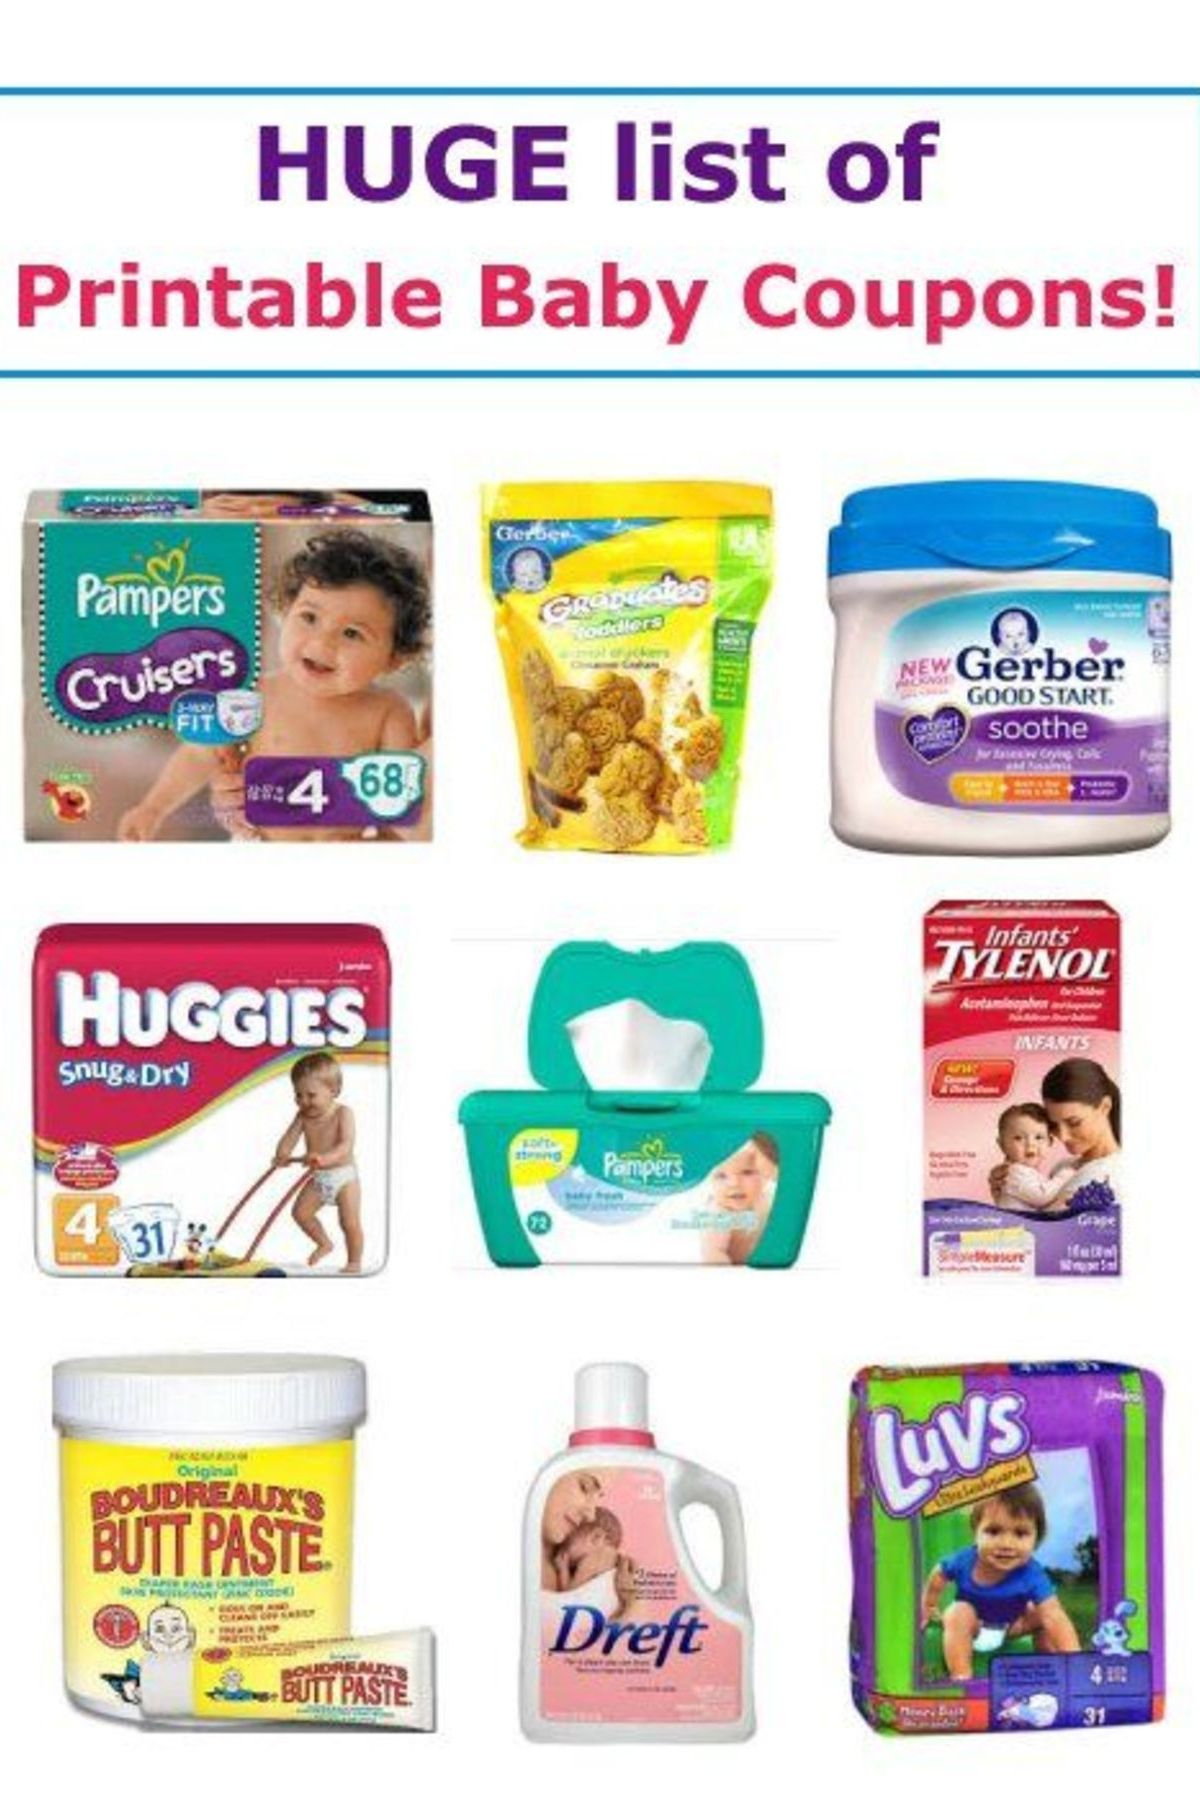 17 Printable Baby Coupons   Baby On A Budget   Baby Coupons, Baby - Free Printable Coupons For Baby Diapers